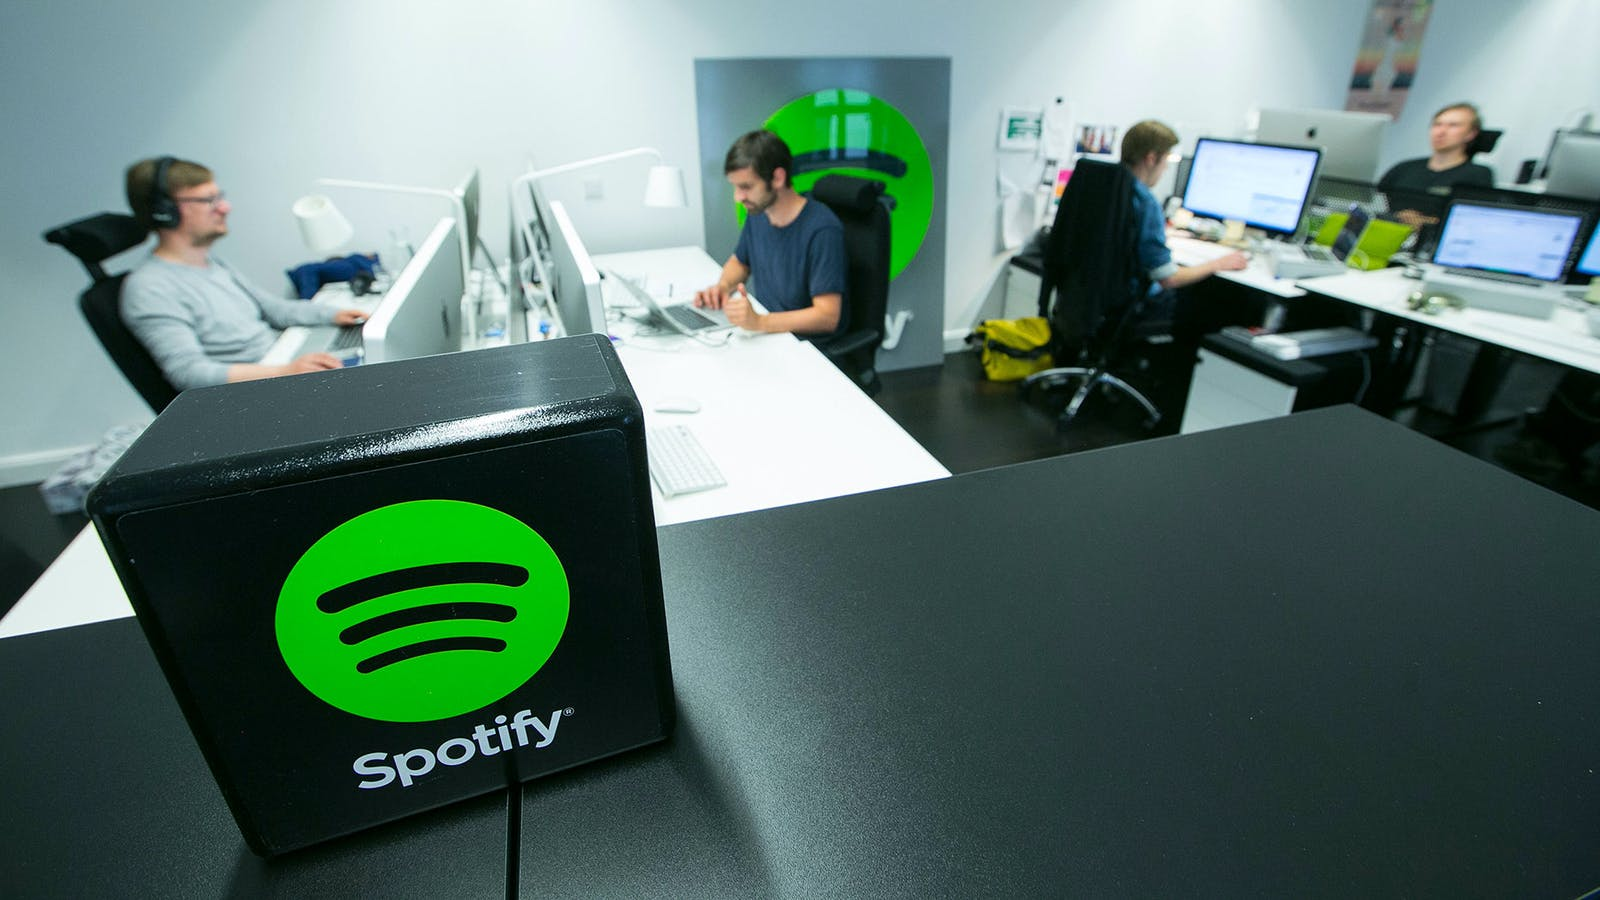 Spotify's offices in Berlin. Photo: Bloomberg